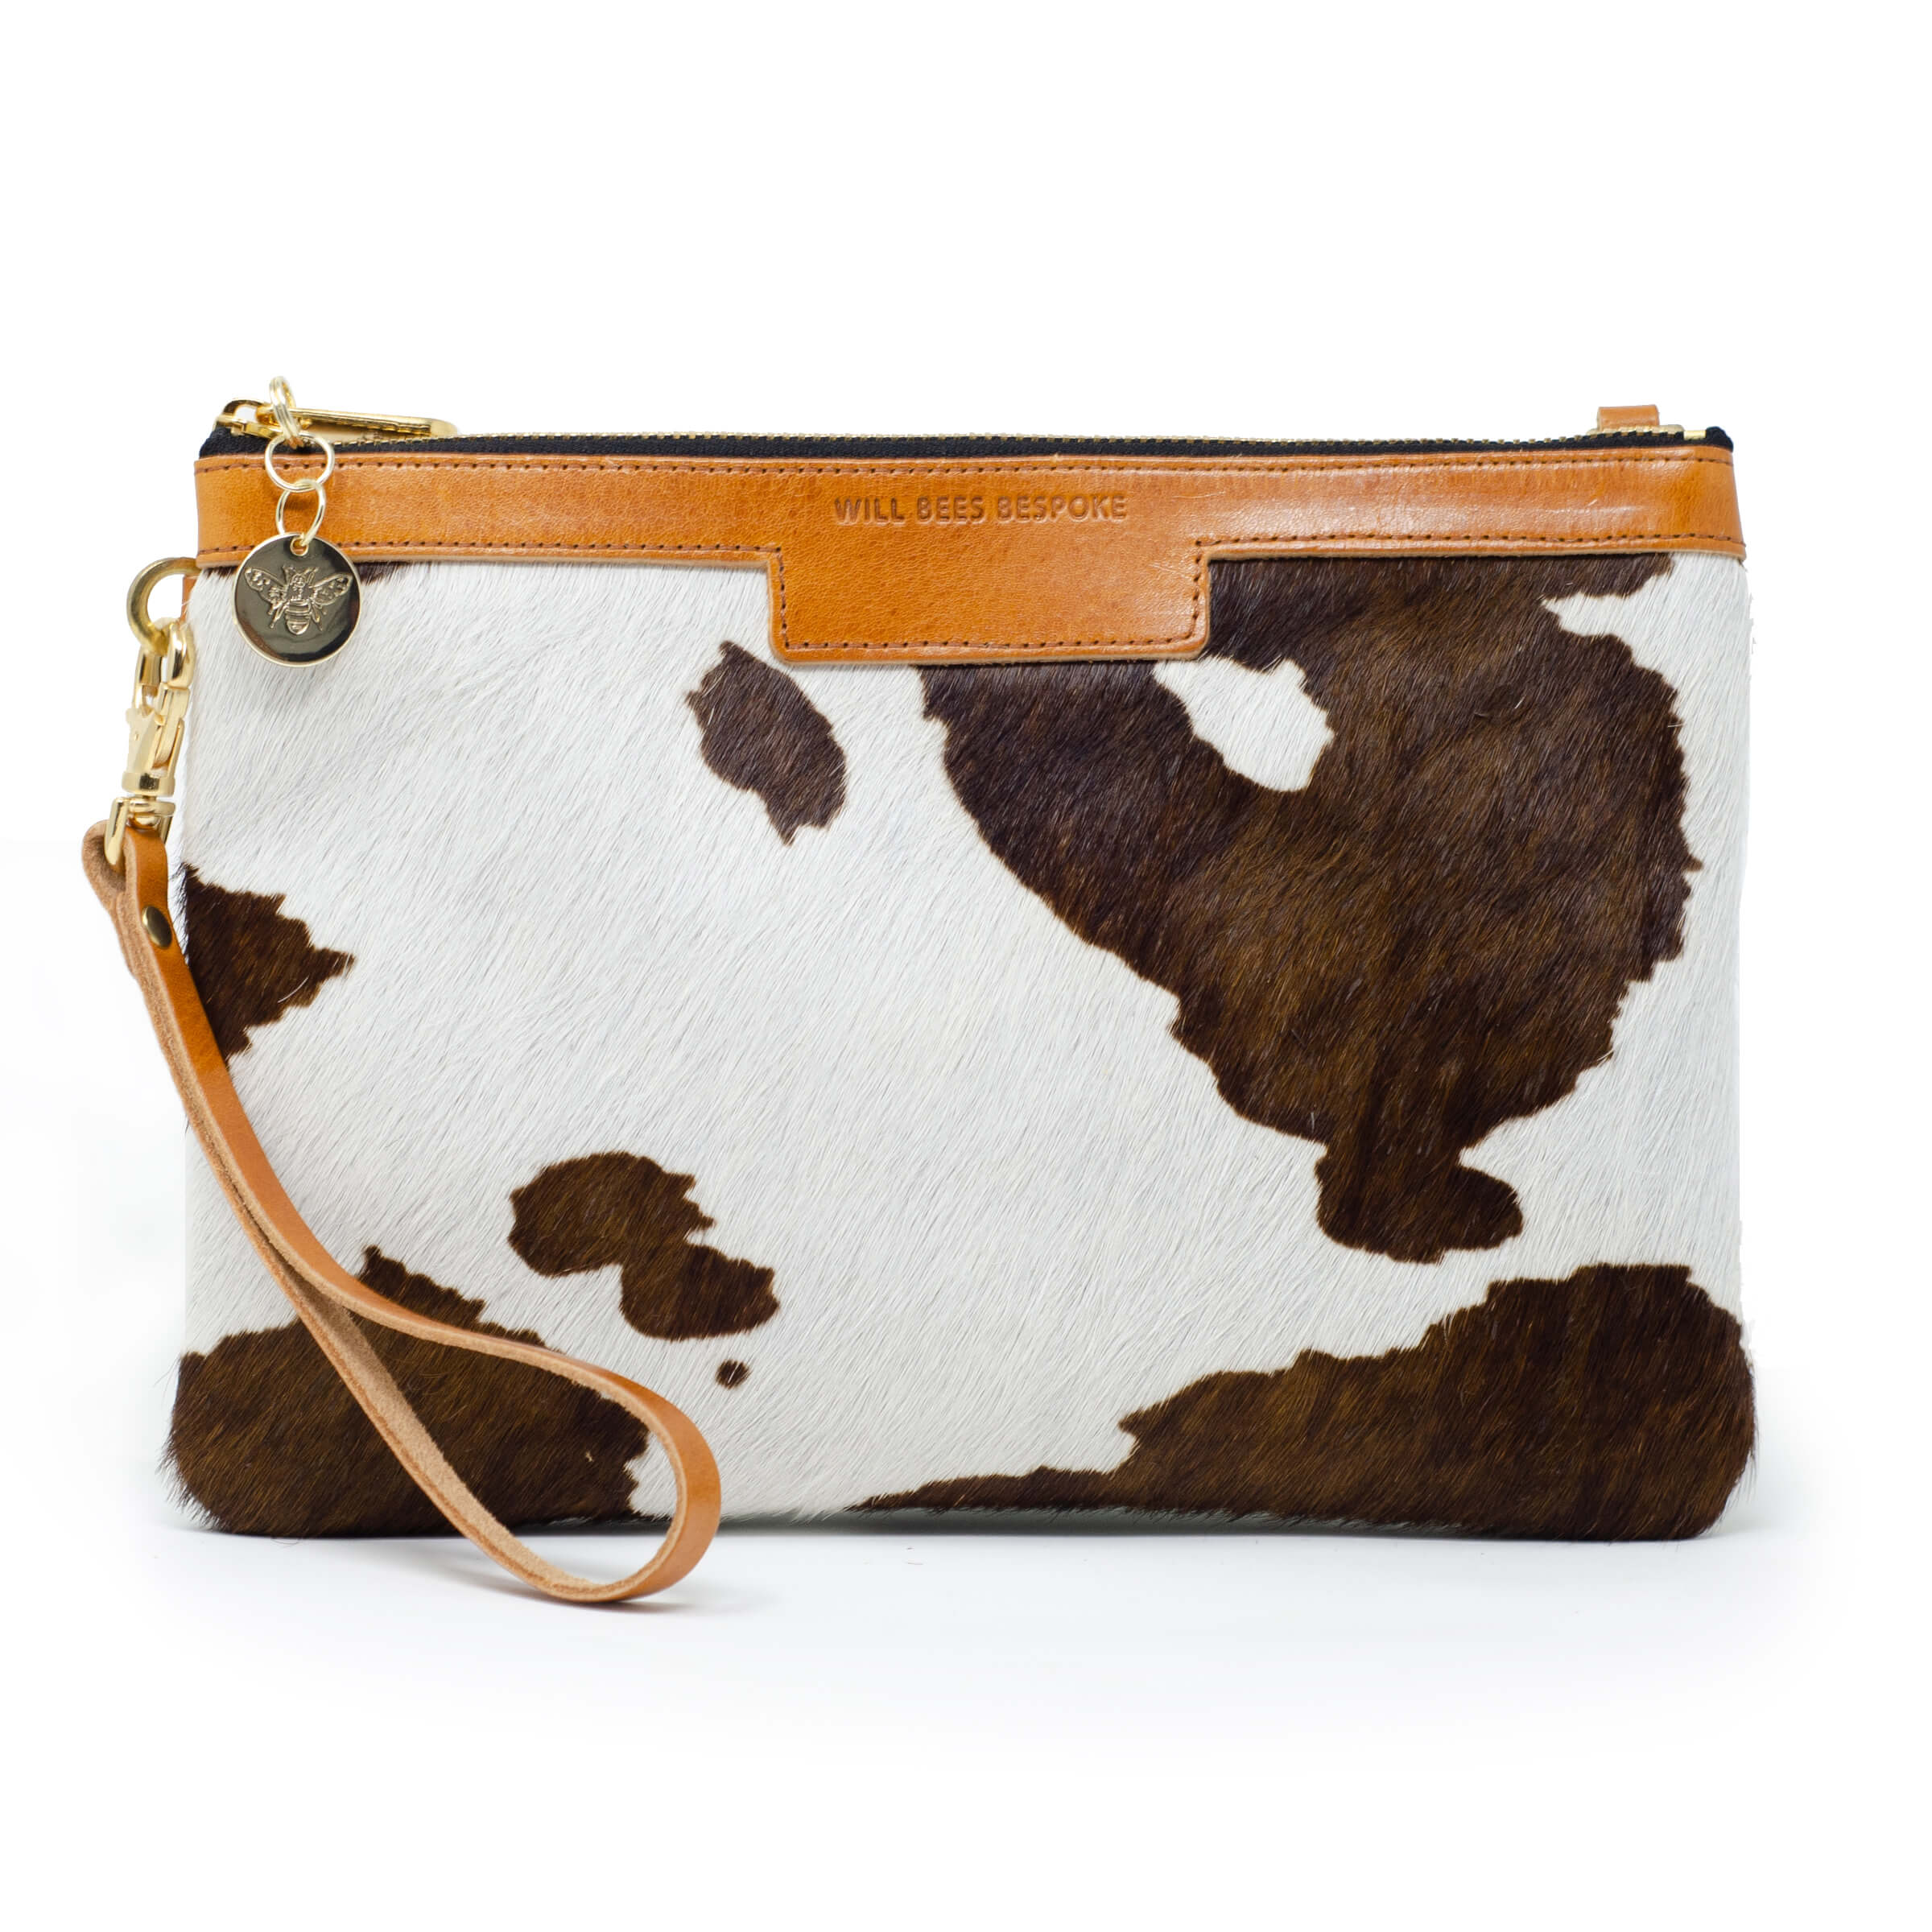 Premium Diana Clutch - Brown Cow Print - Will Bees Bespoke